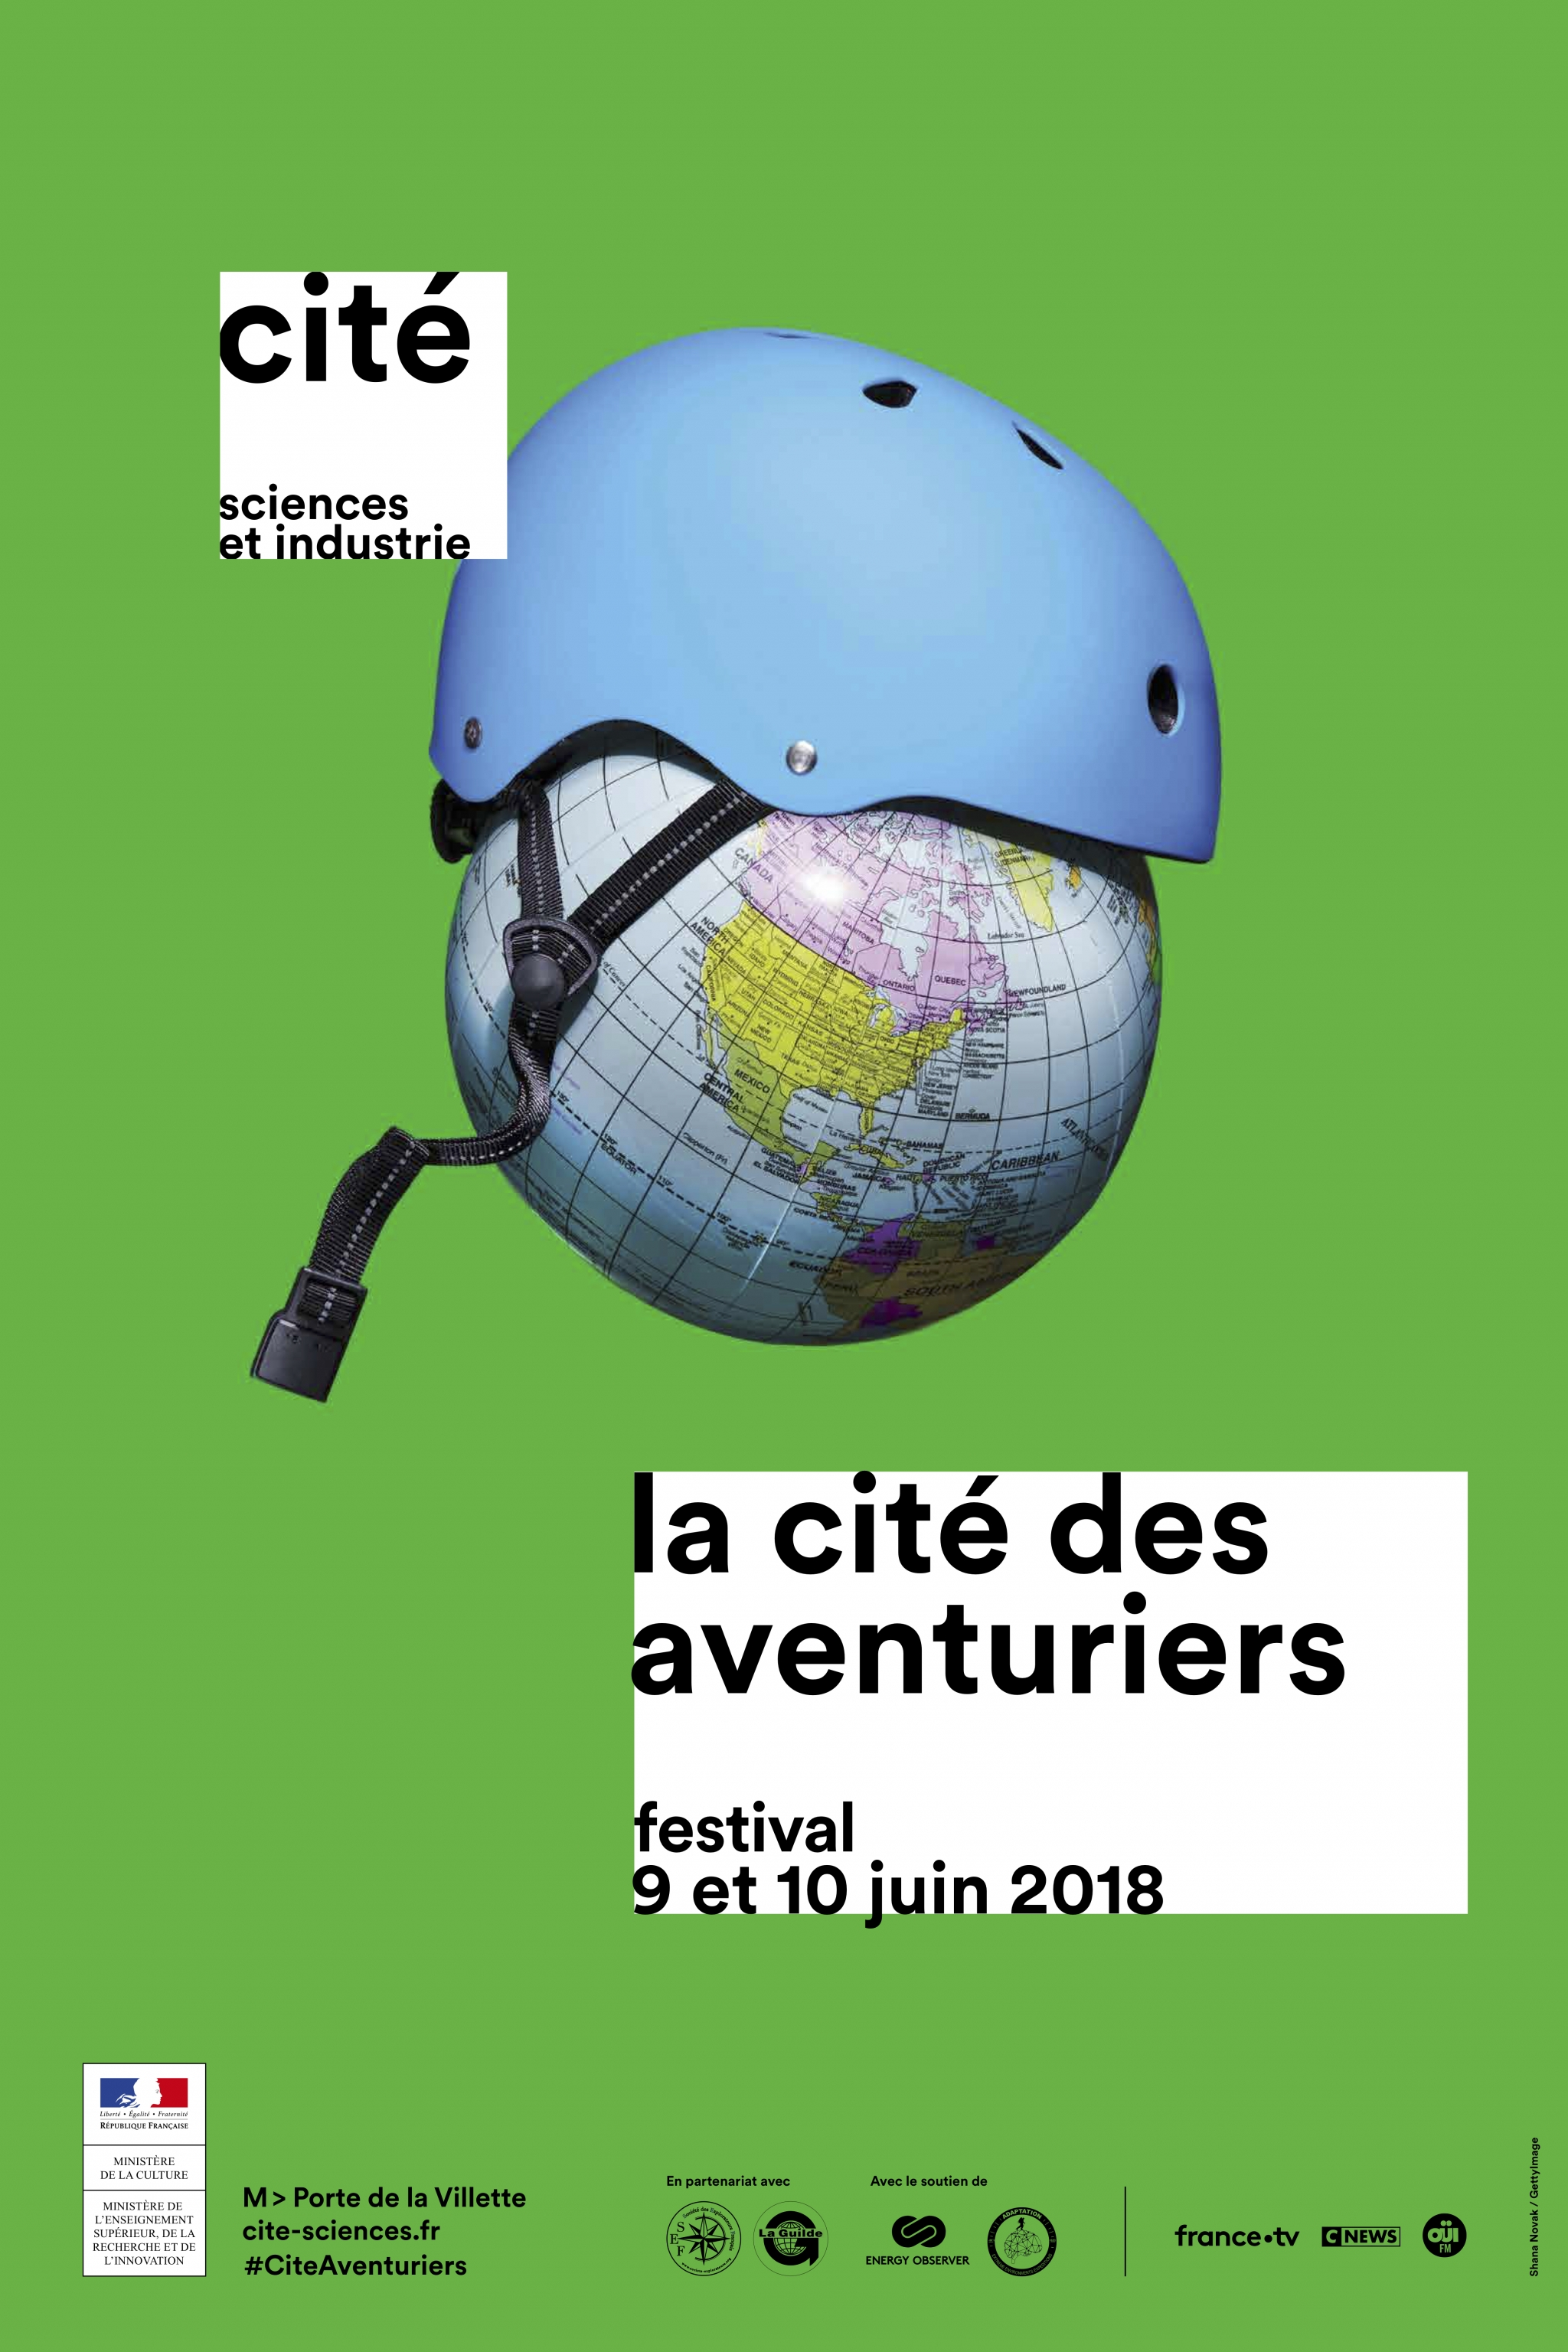 festival, la cité des sciences et de l'industrie,première édition,festival la cité des aventuriers et aventurières,paris,sciences,exploration,adaptation by christian clot,la société des explorateurs français, la guilde européenne du raid,energy observer.